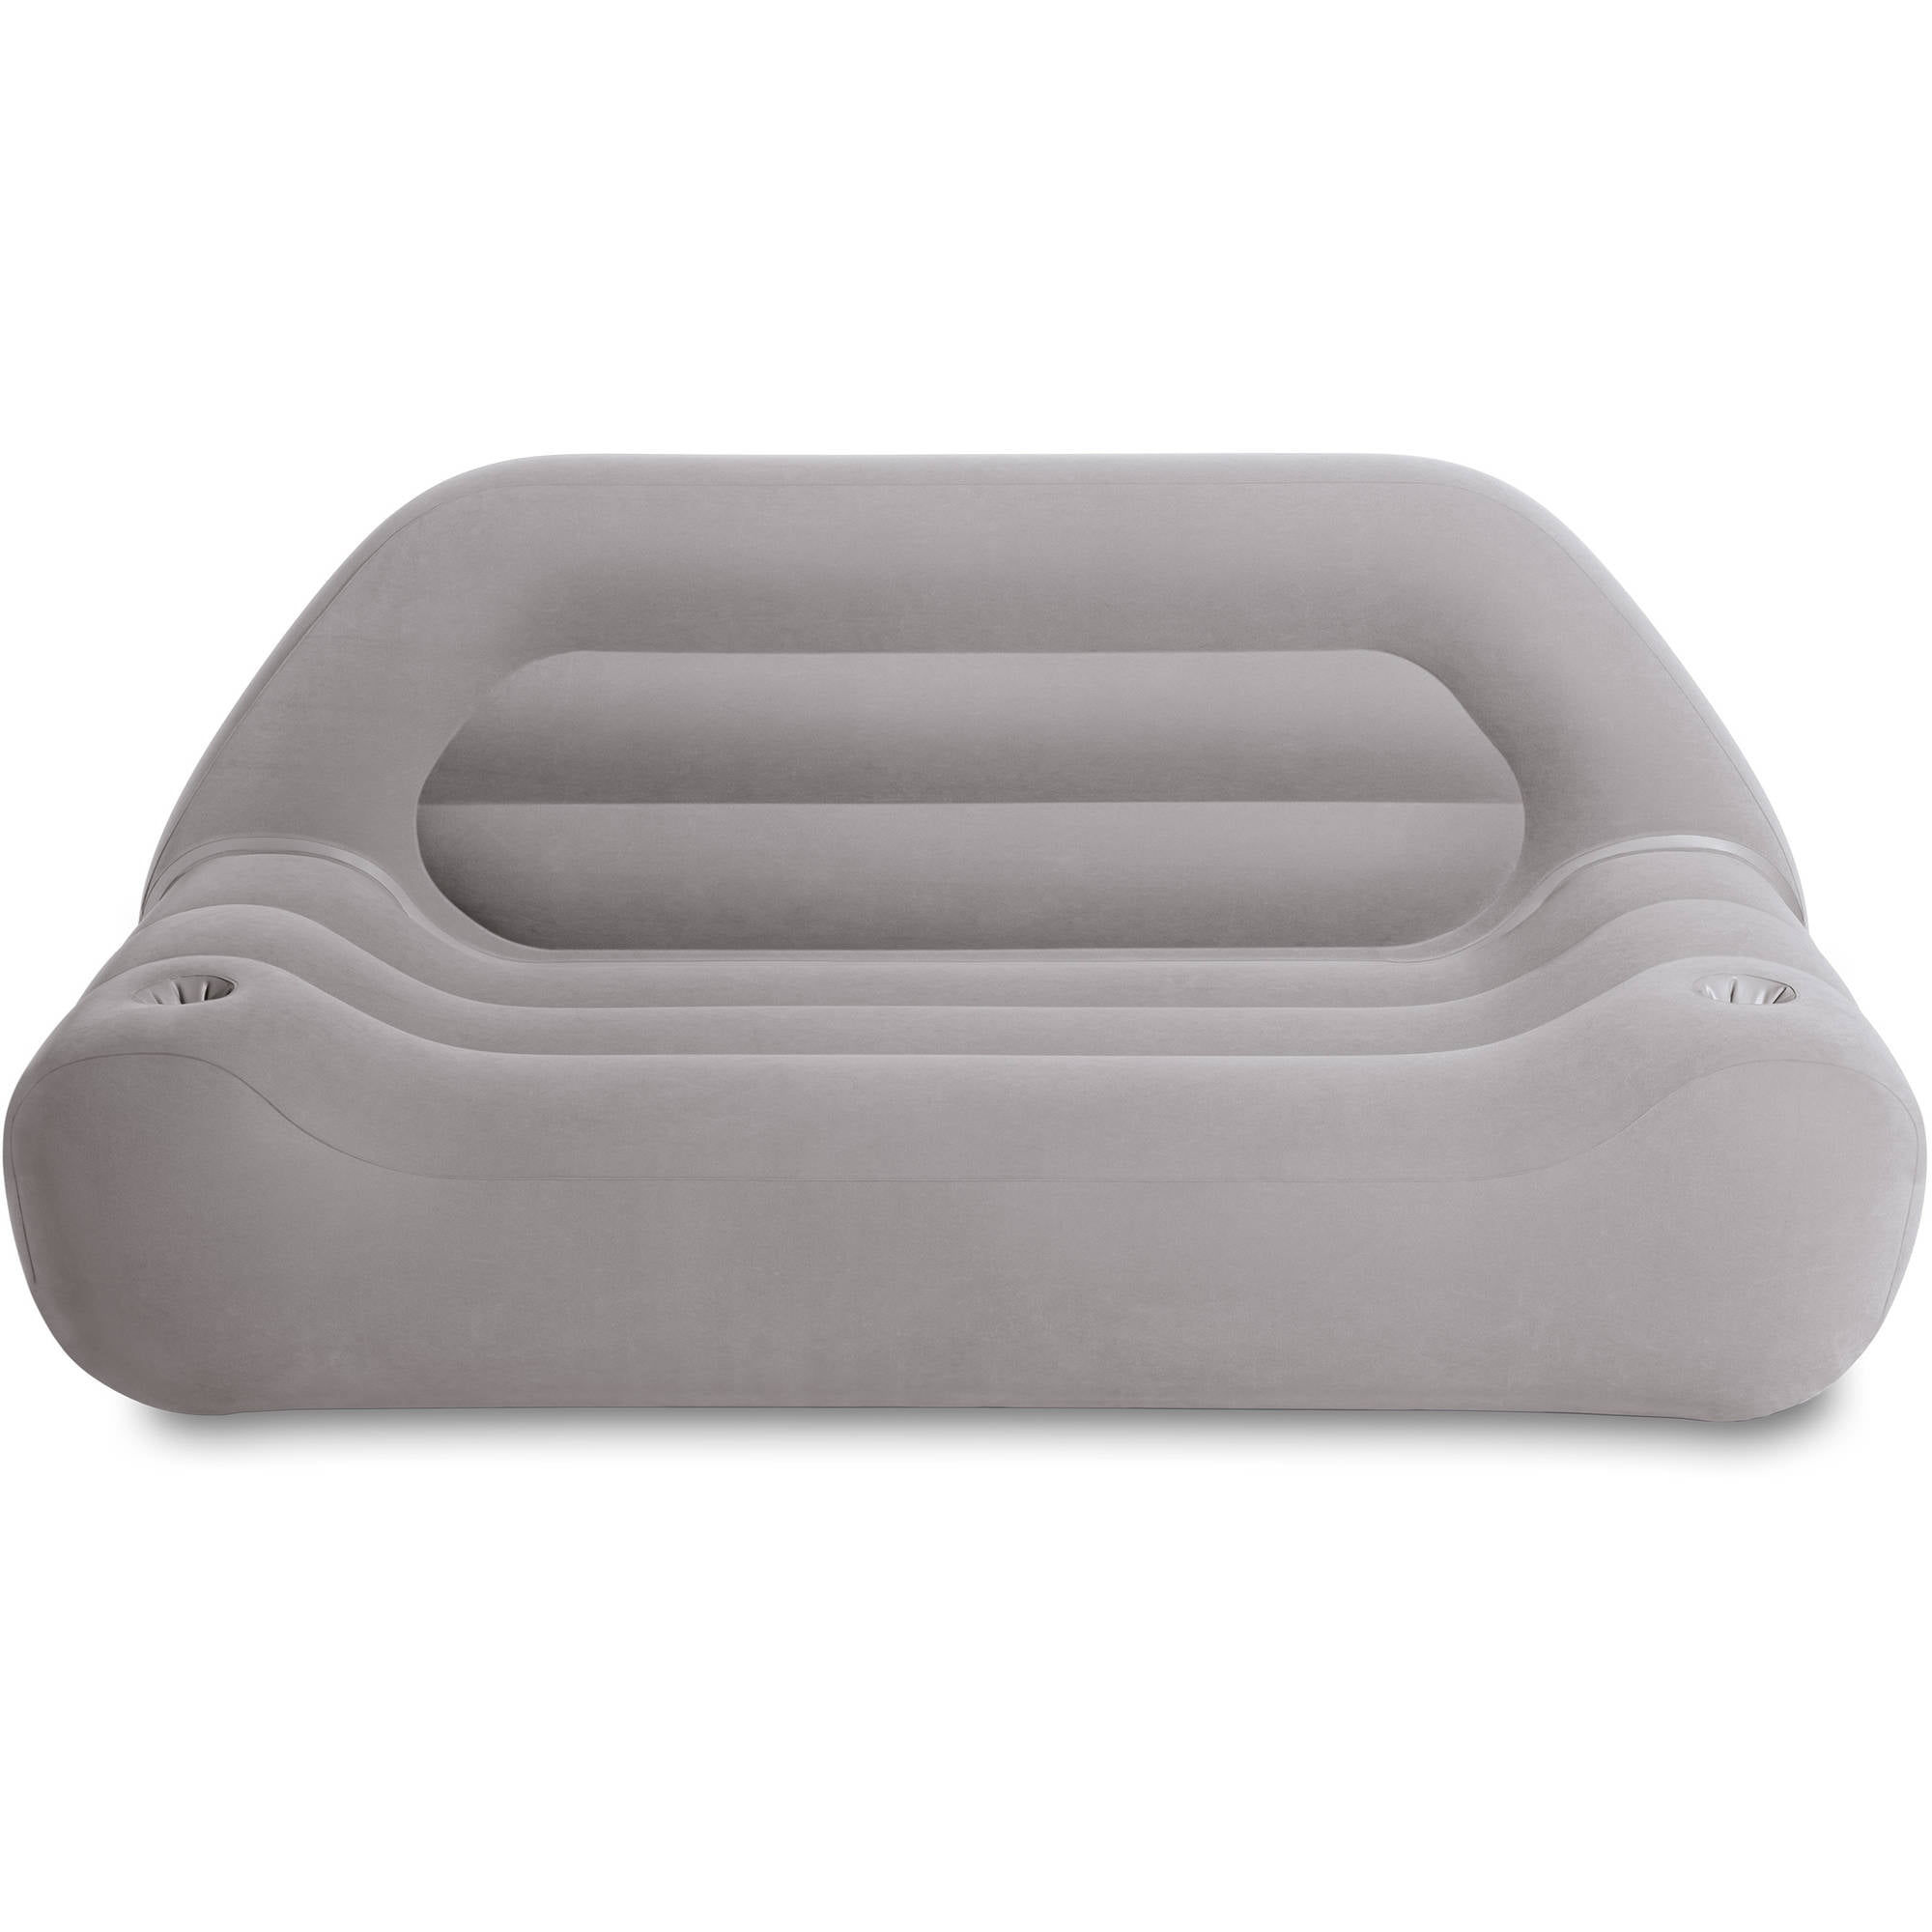 Intex Inflatable Camping Sofa 75 X 37 X 34